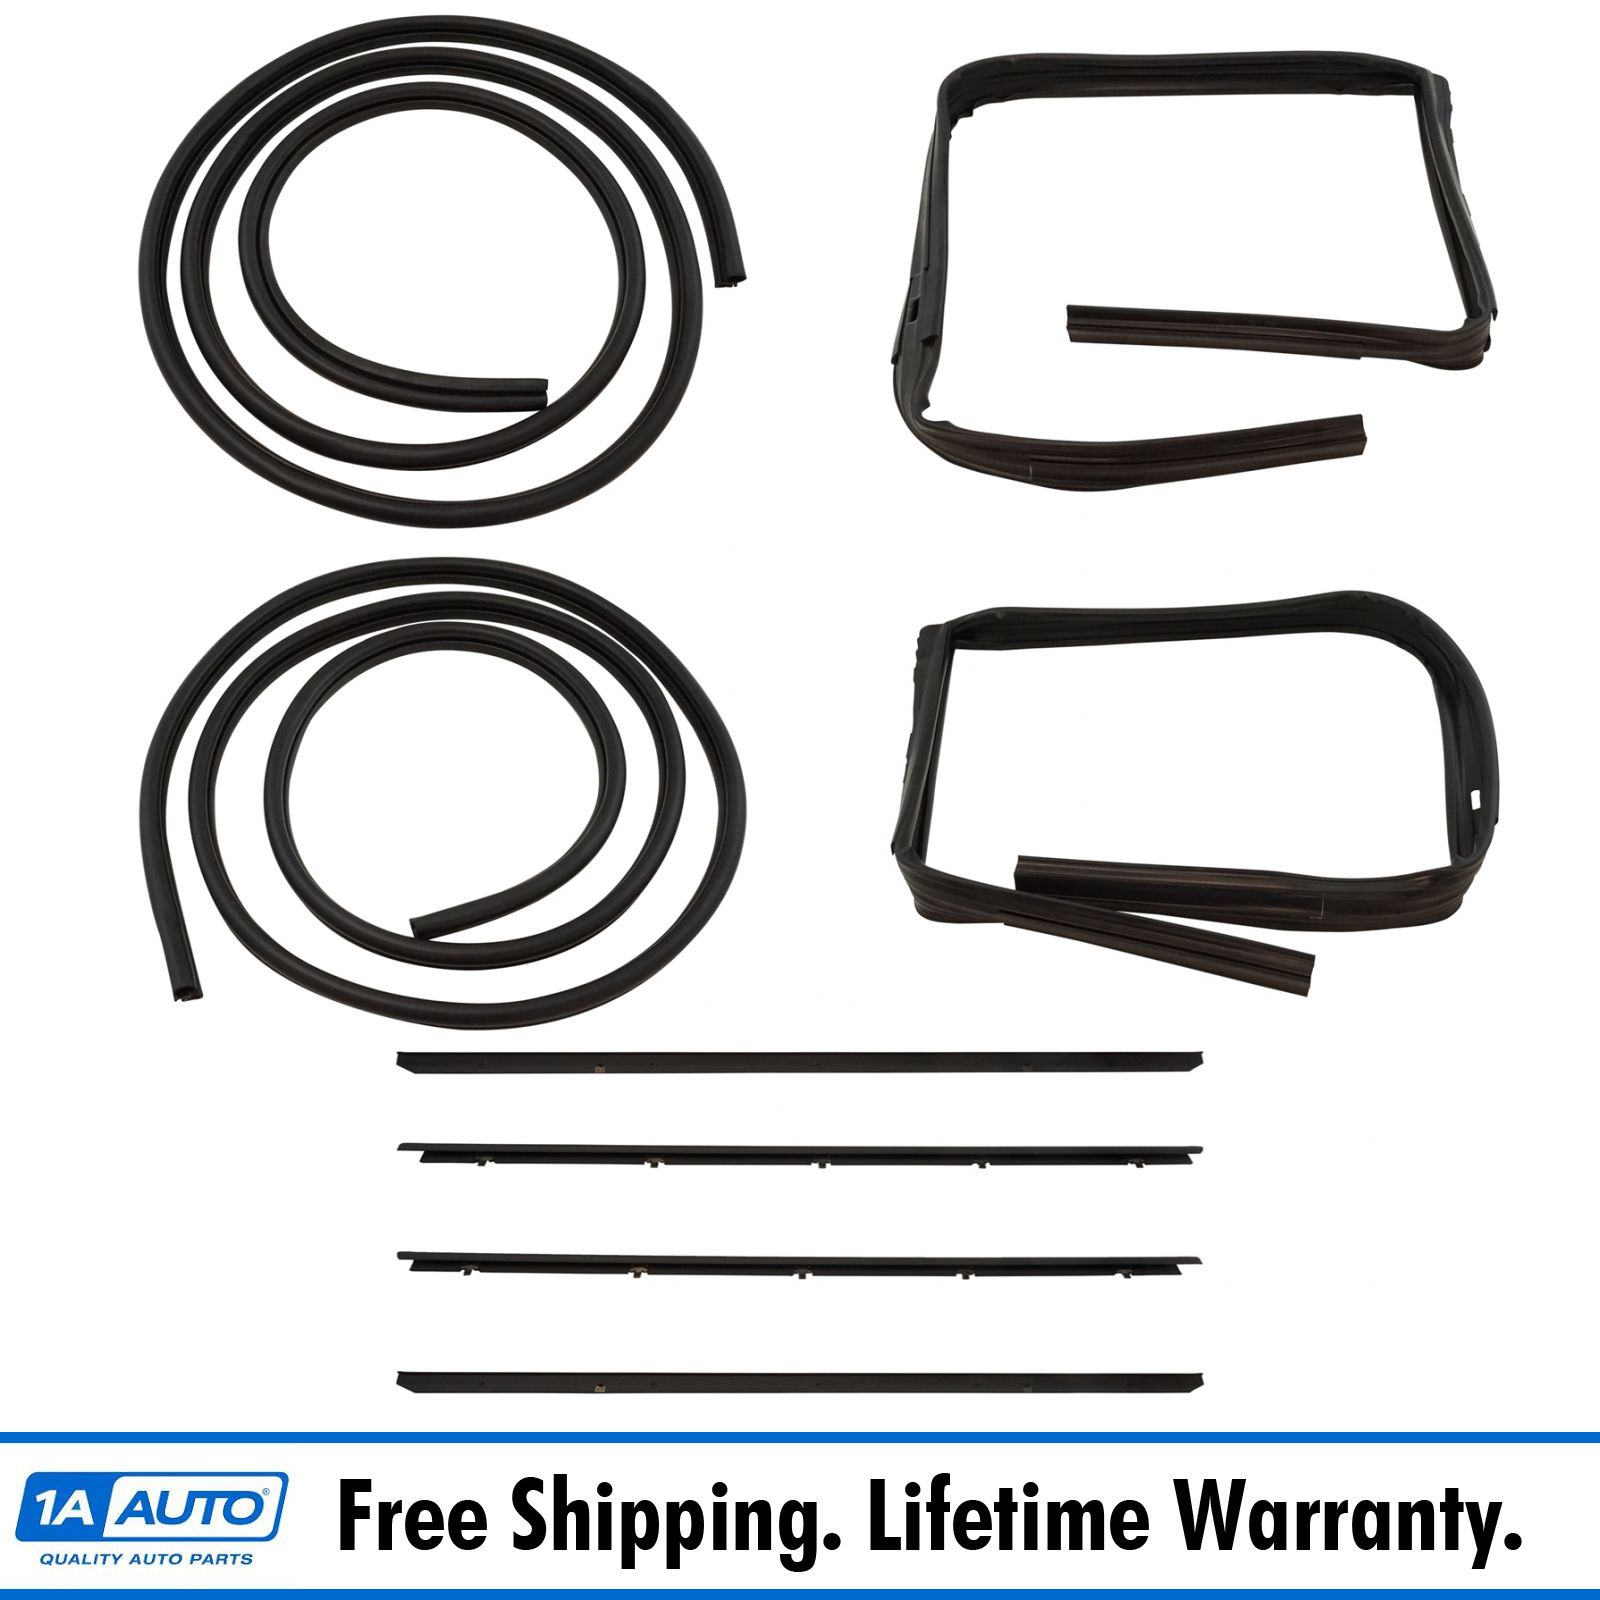 Rubber Door Weatherstrip Seal Kit Set For 83 94 Chevy S10 Blazer Gmc S 15 Jimmy Ebay